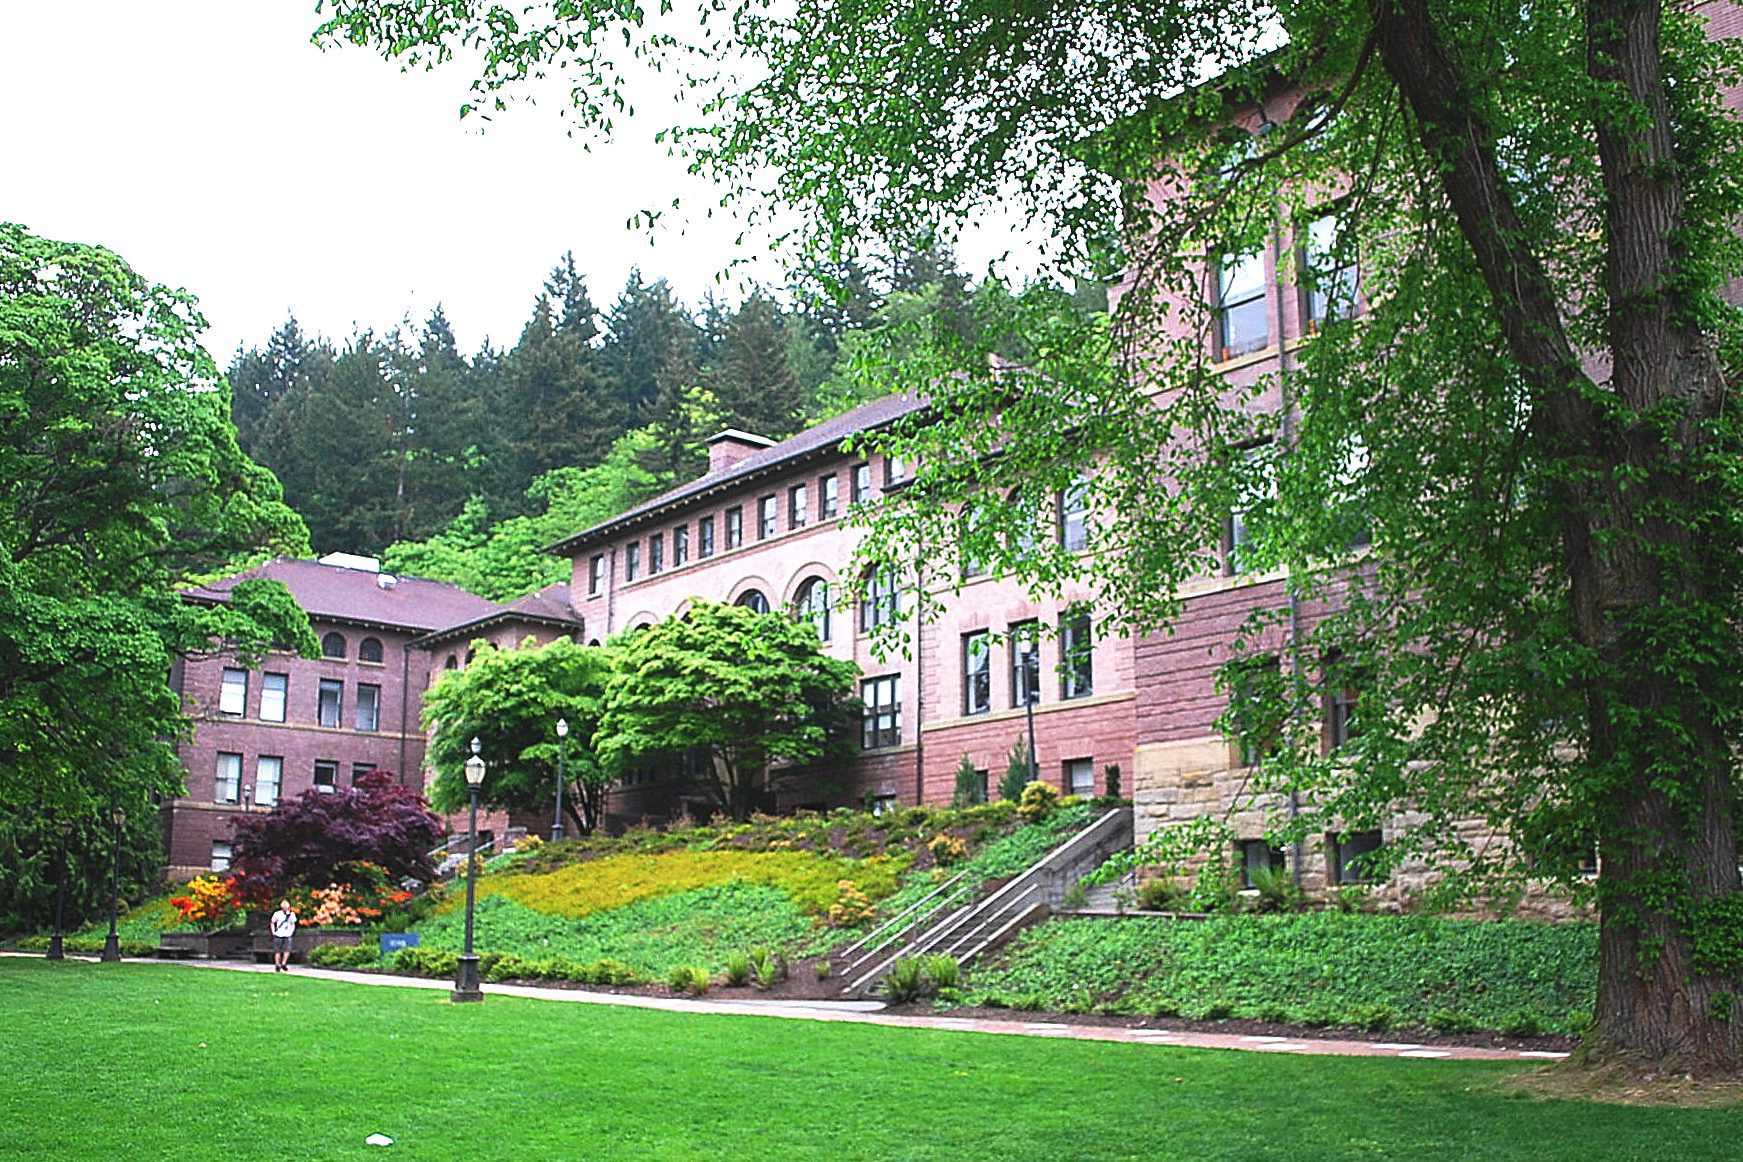 western-washington-university-flickr-59720698c4124400111c5617